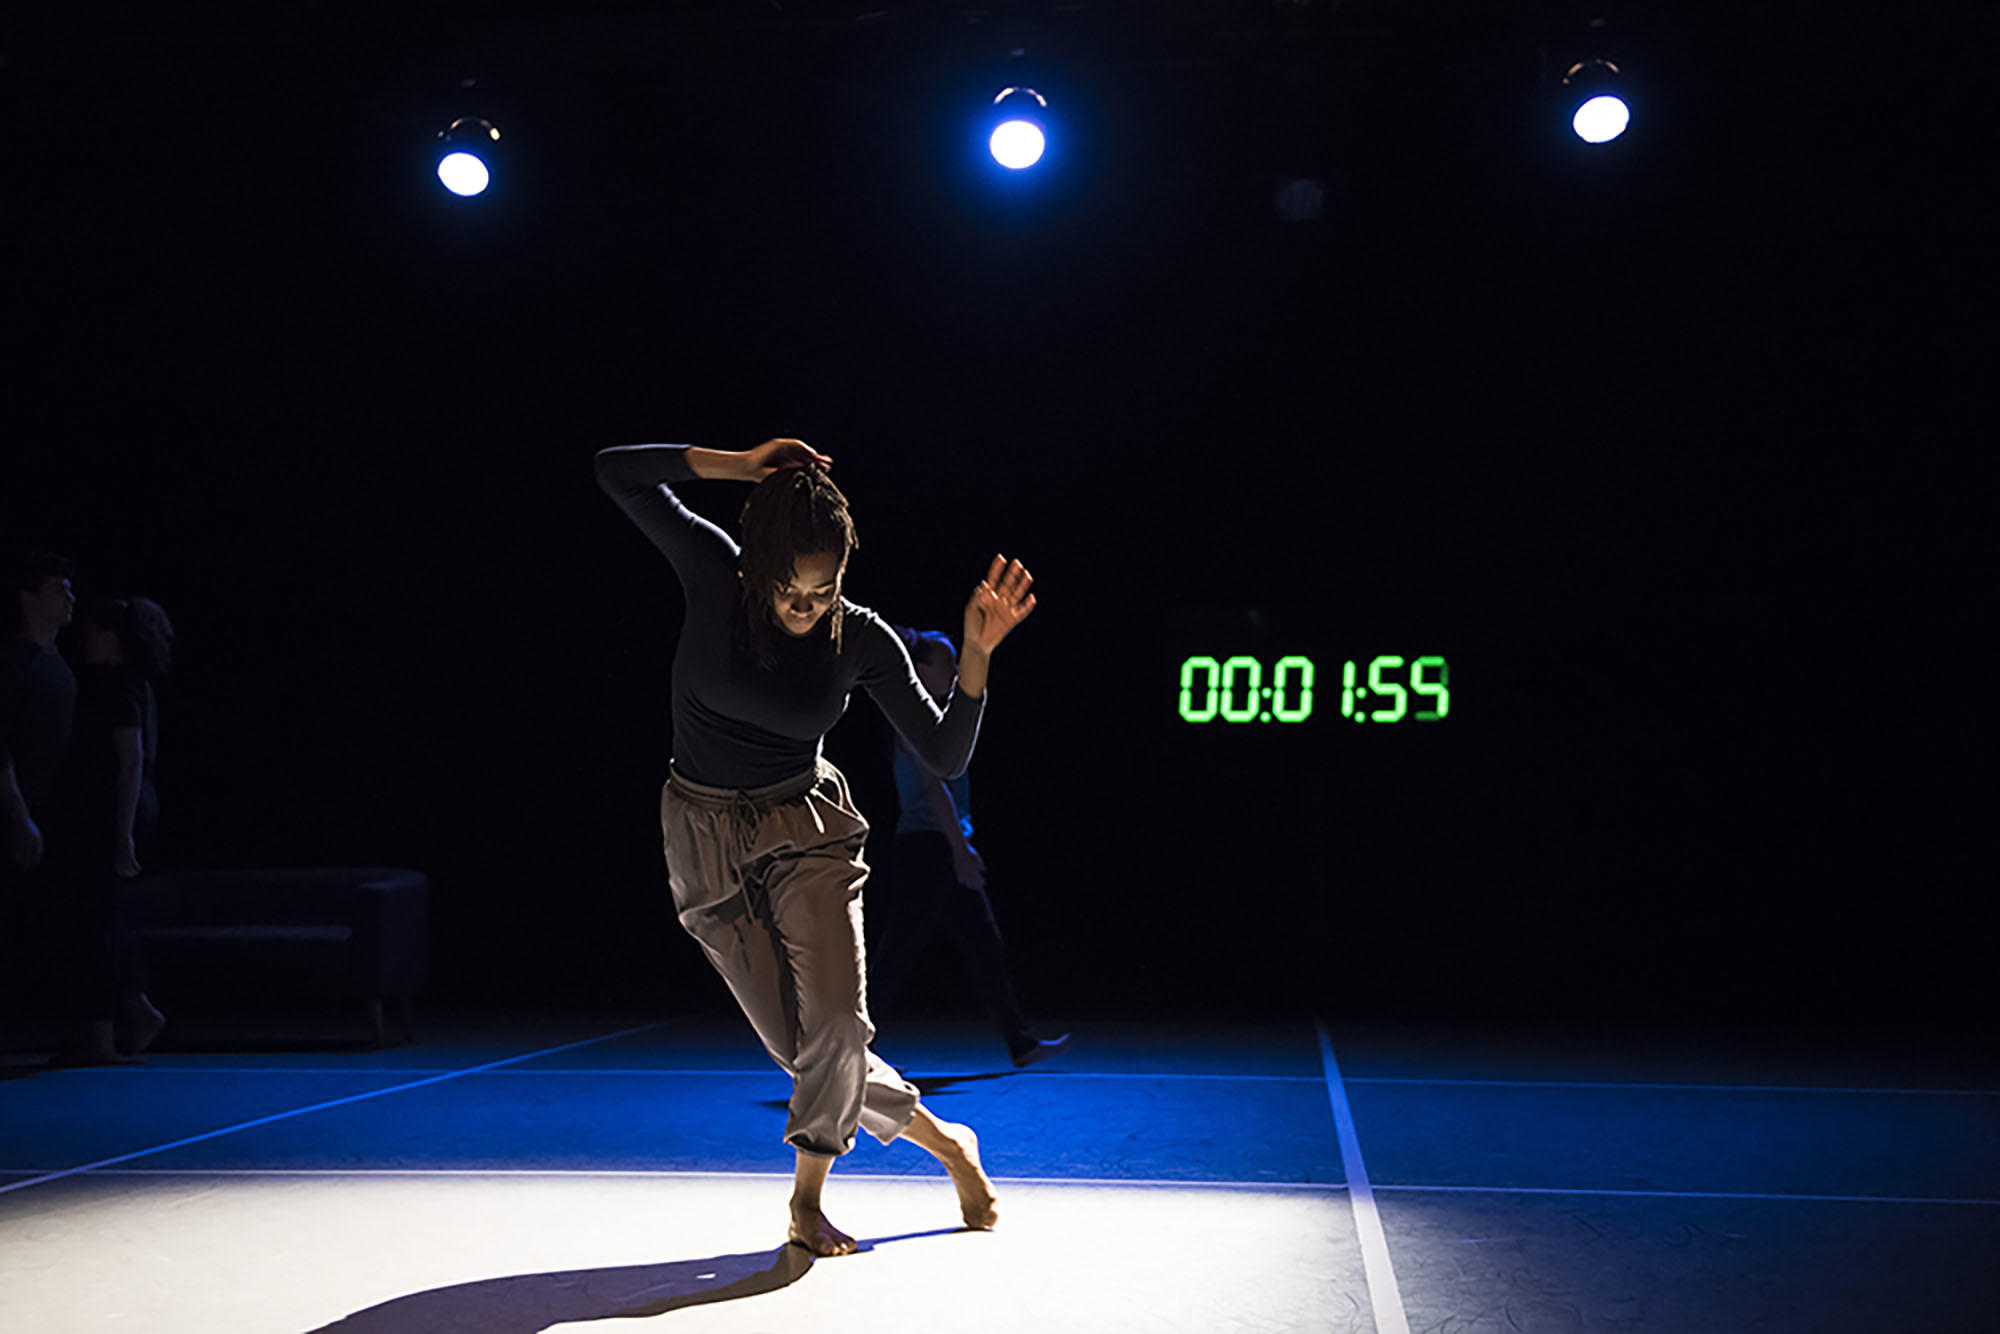 Harvard Dance Project student in movement on stage with dramatic lighting and time clock in the background.